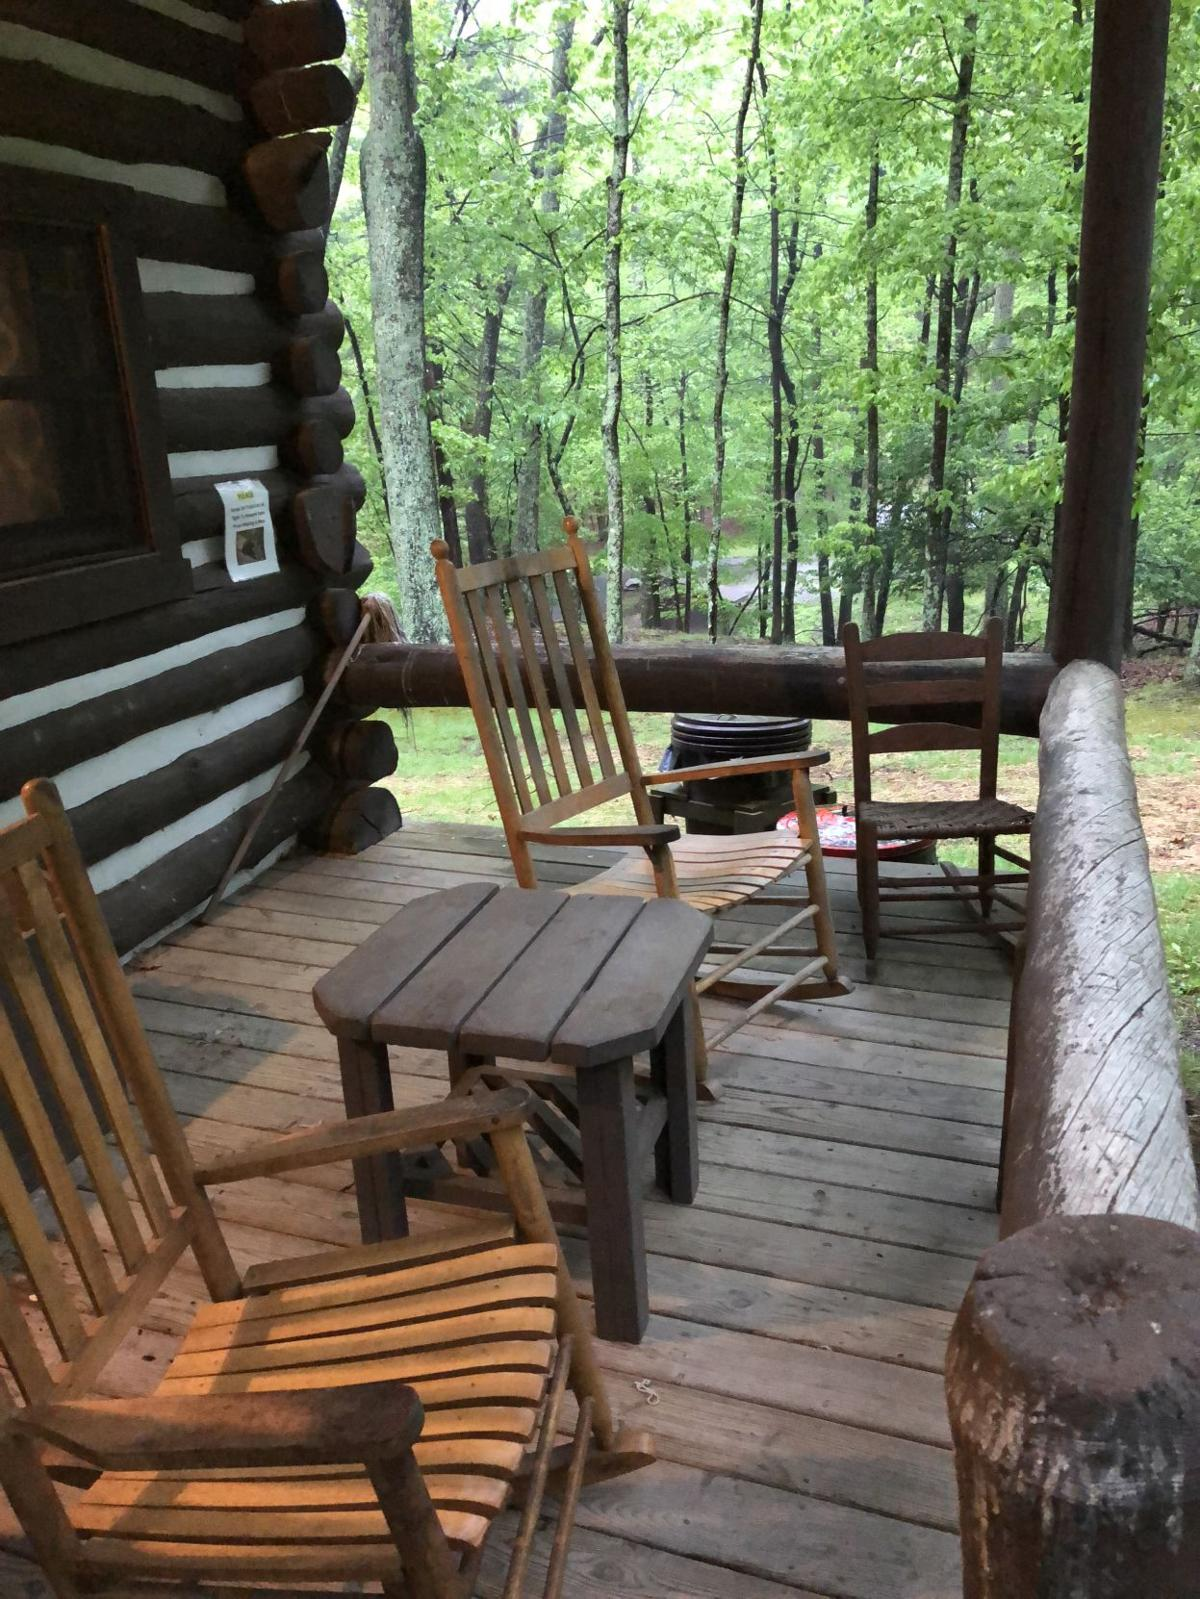 The cabins feature prime porch sitting.